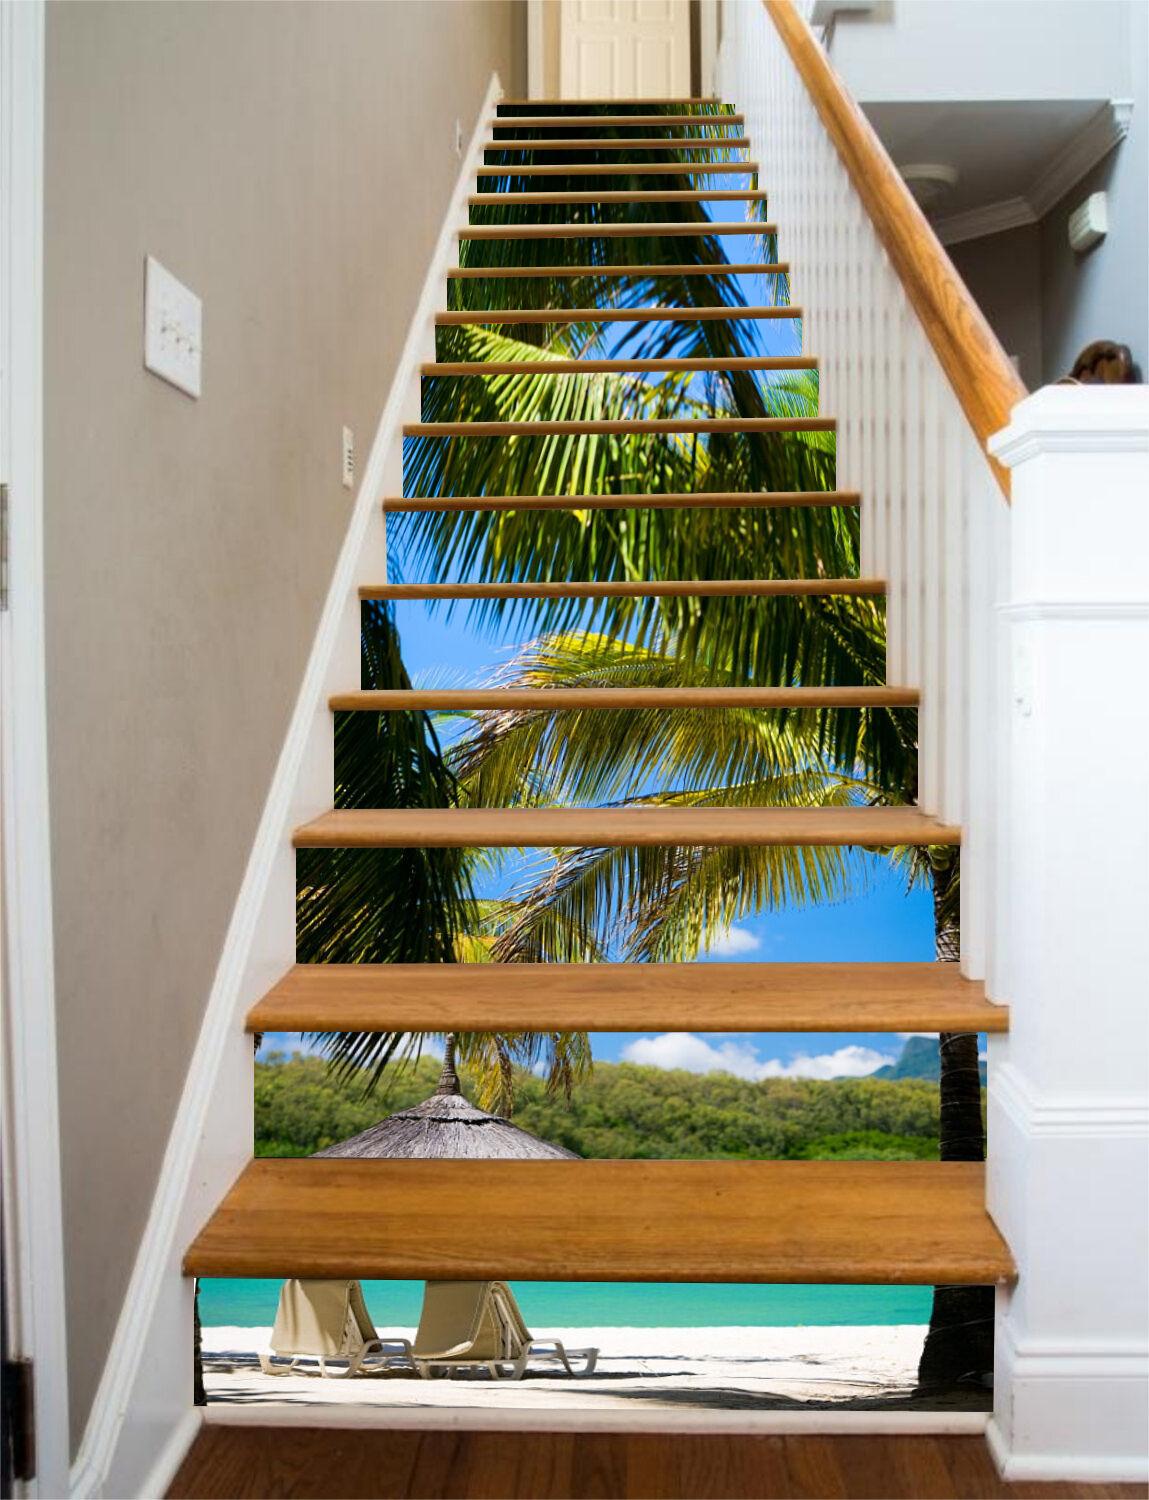 3D Beach Tree 23 Stair Risers Decoration Photo Mural Vinyl Decal Wallpaper UK